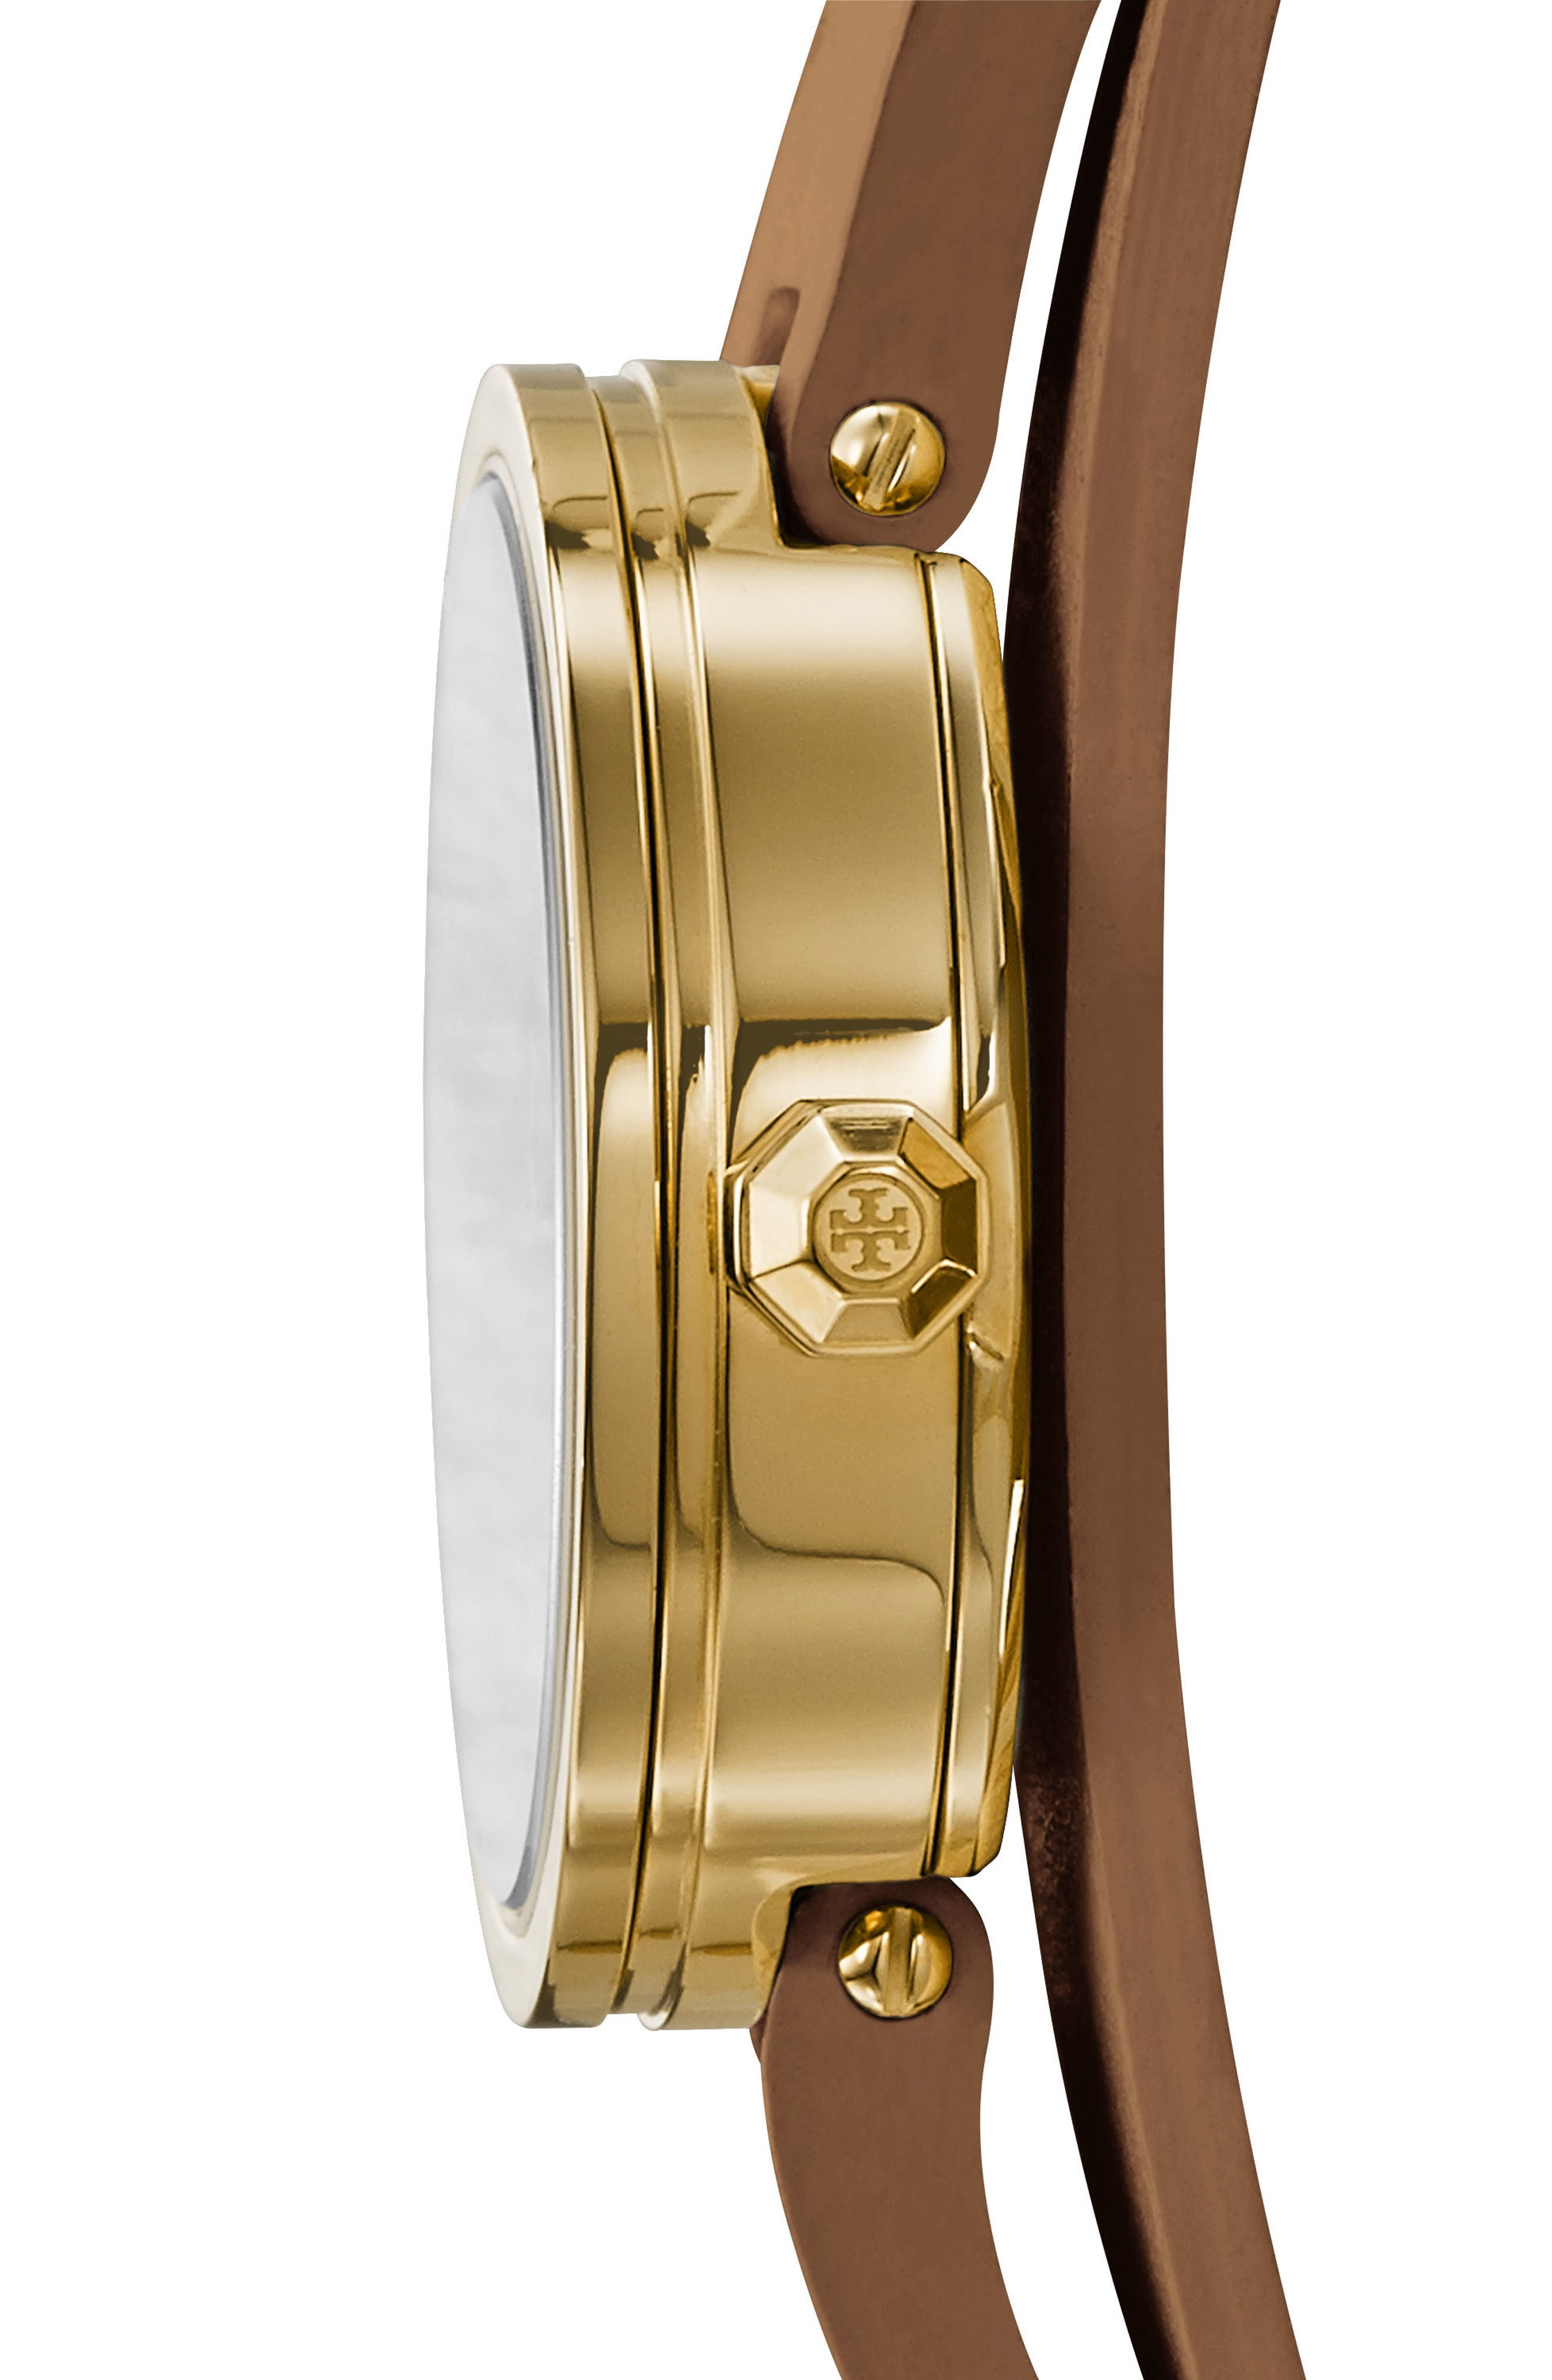 TORY BURCH, Reva Logo Dial Double Wrap Leather Strap Watch, 28mm, Alternate thumbnail 2, color, LUGGAGE/ IVORY/ GOLD